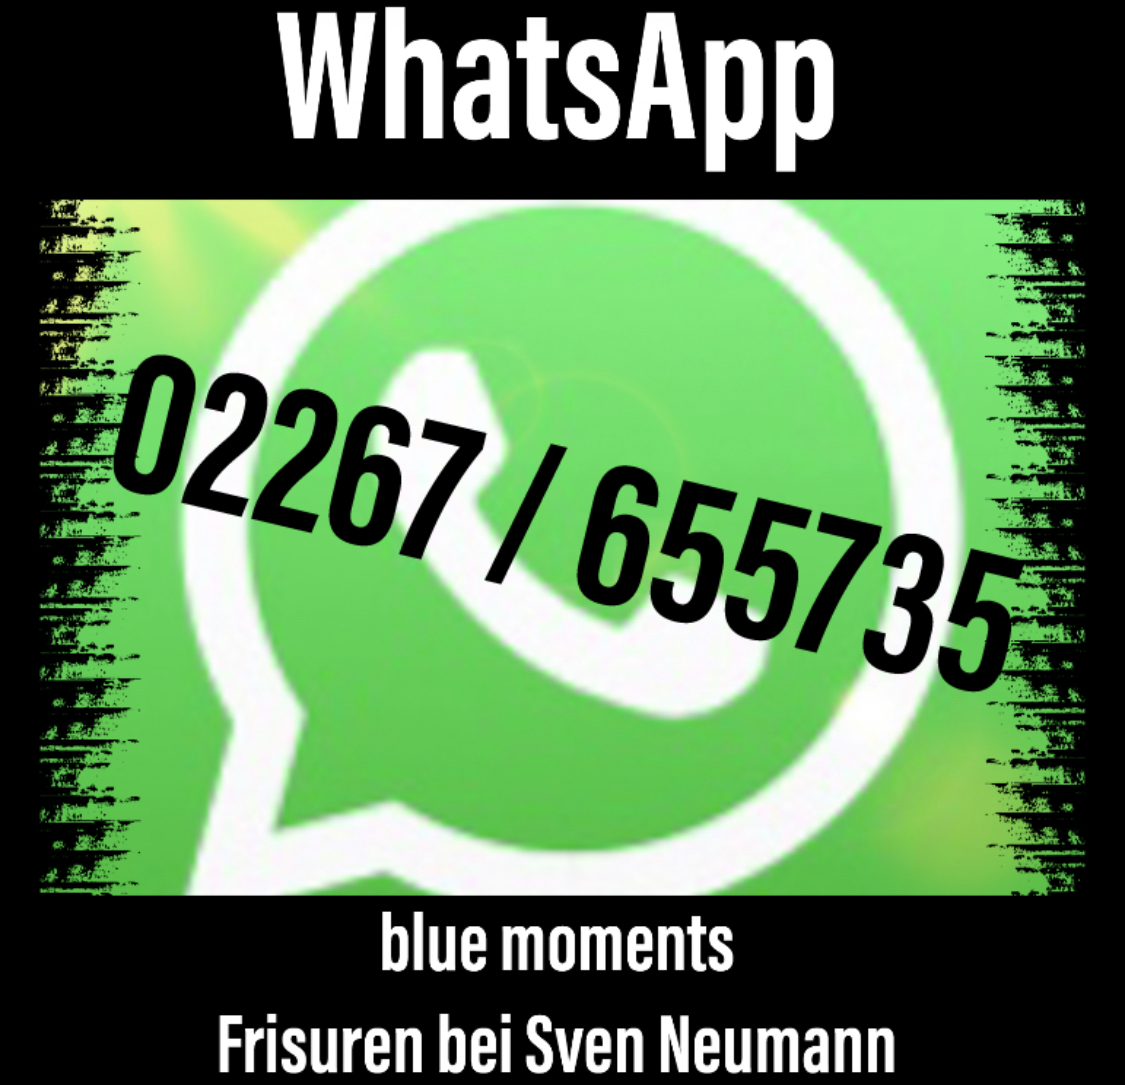 WhatsApp & blue moments